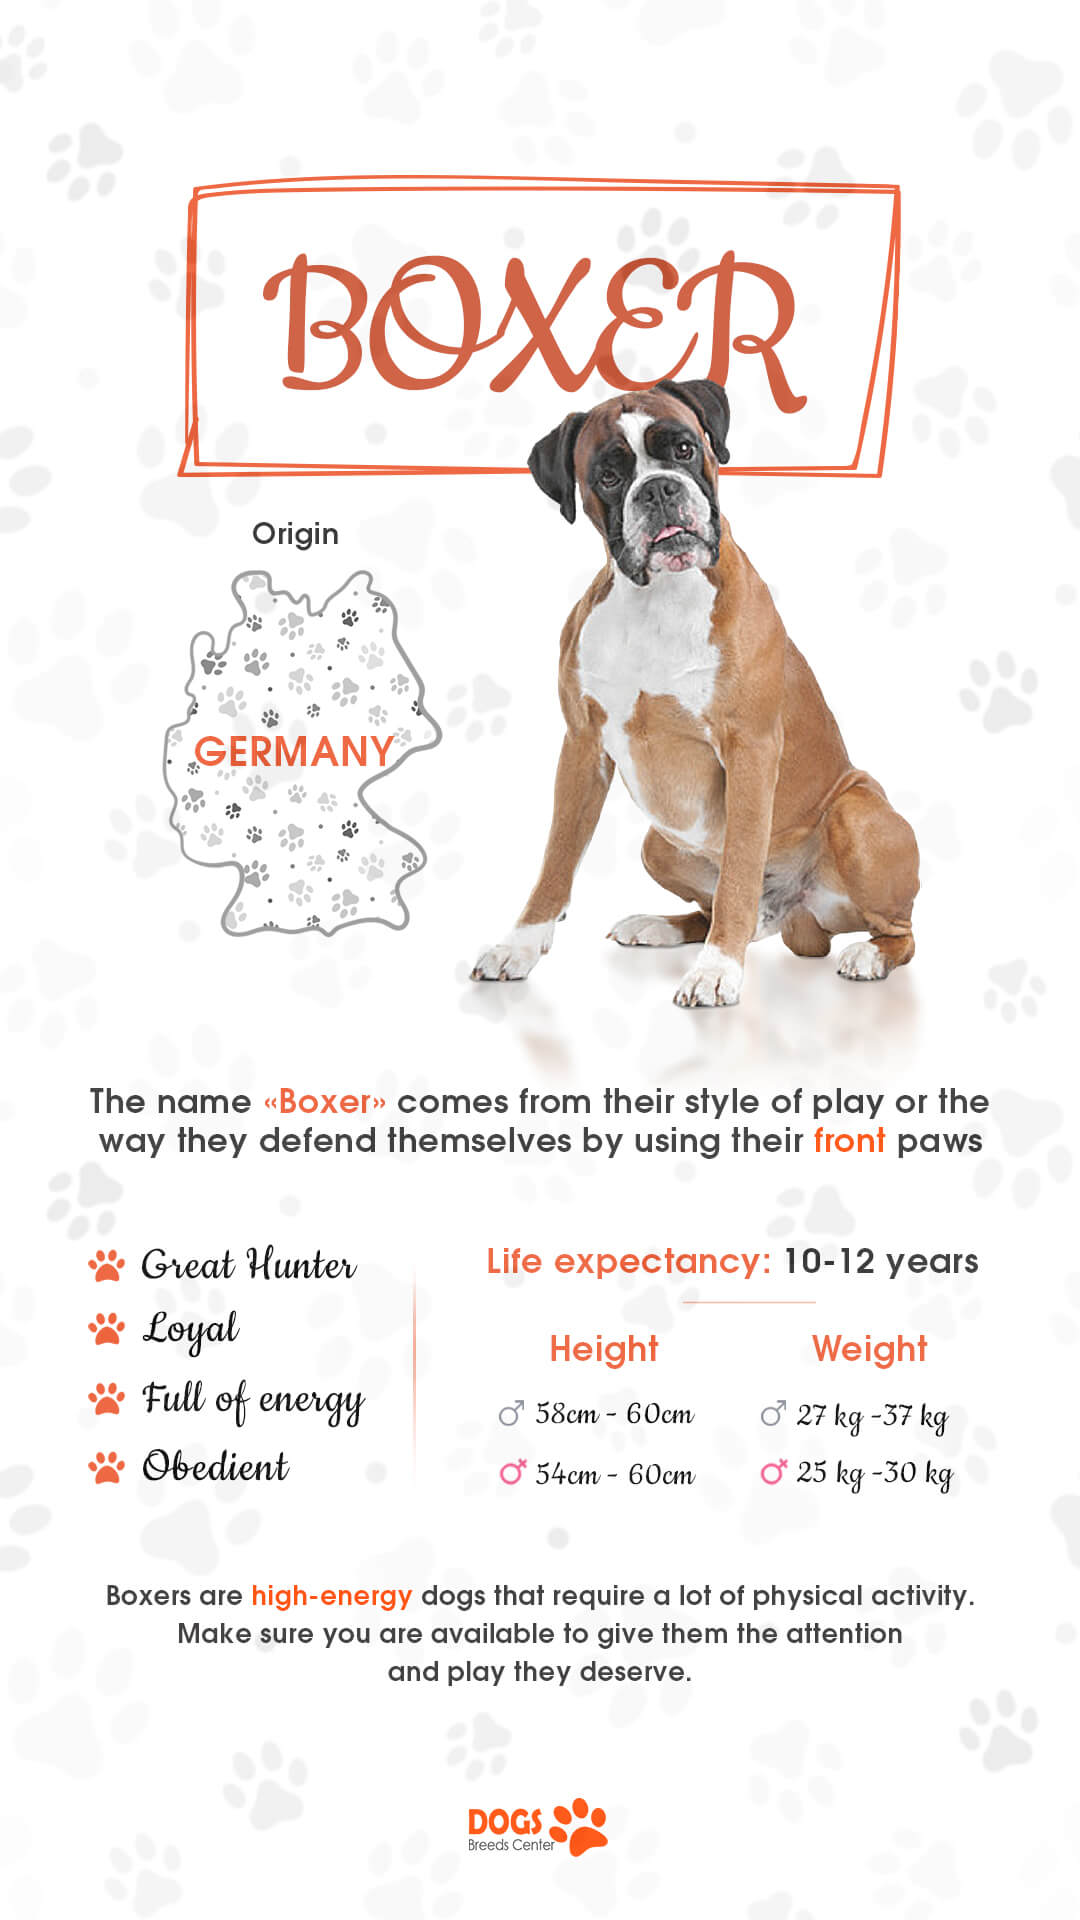 boxer dogs breed